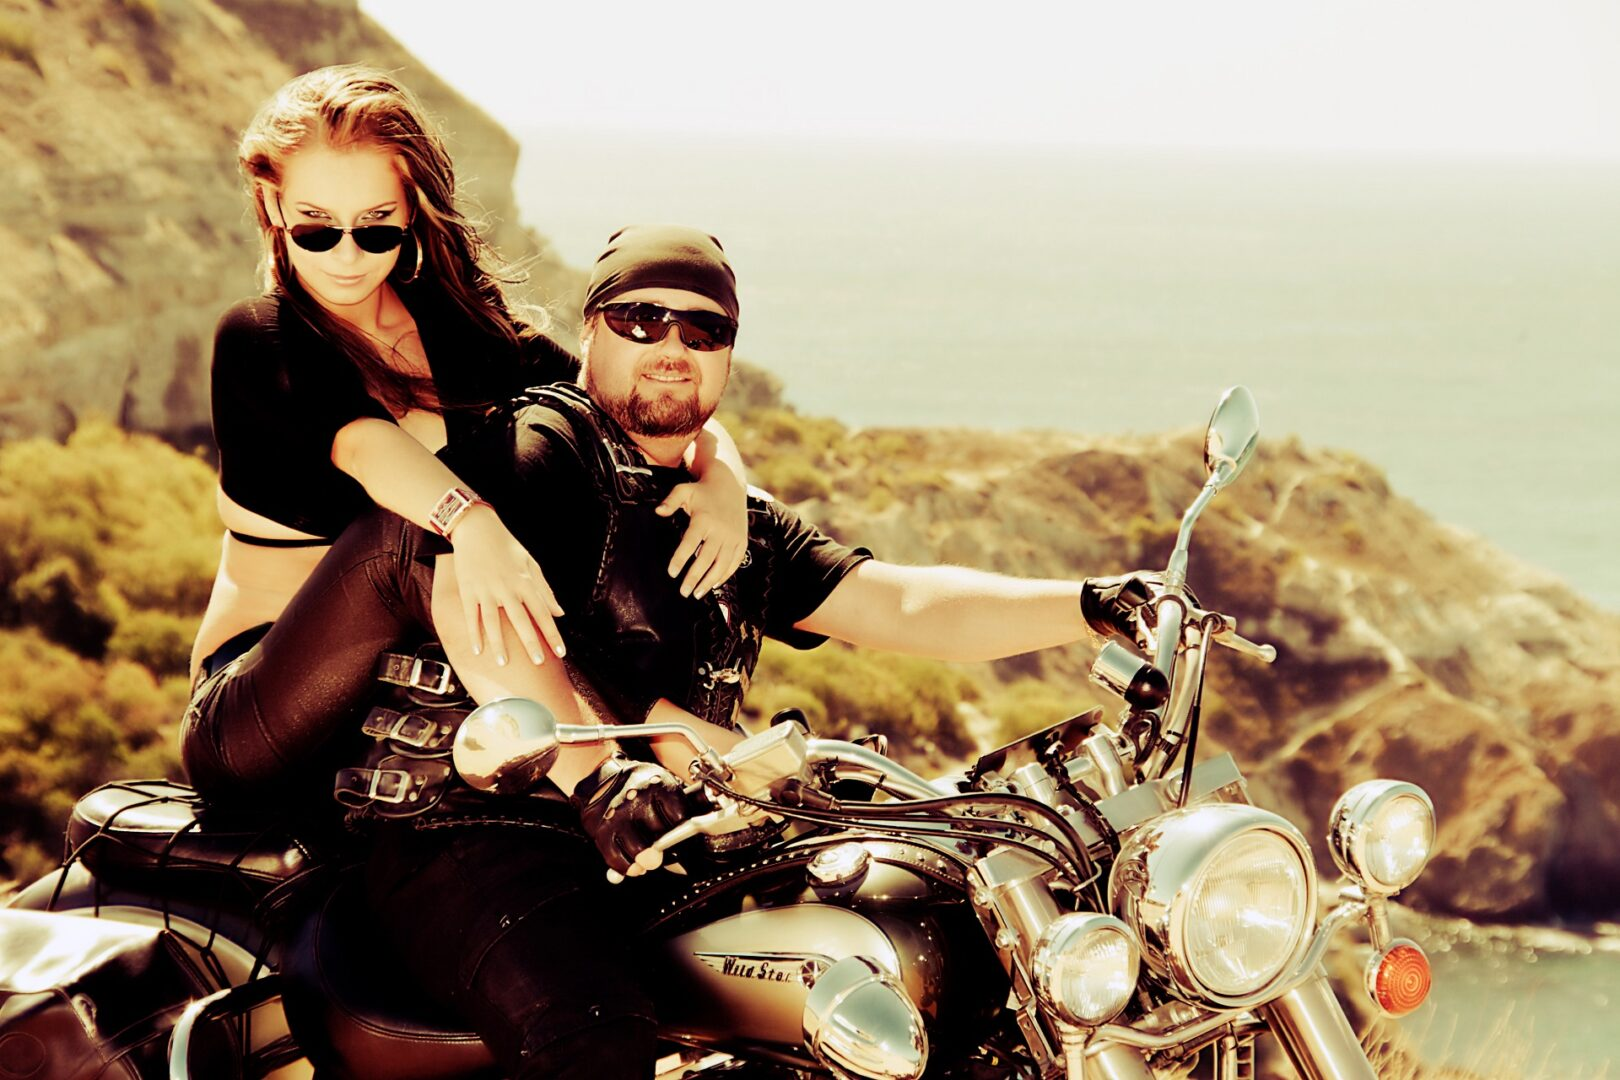 The in love pair on a motorcycle on a background of the sea